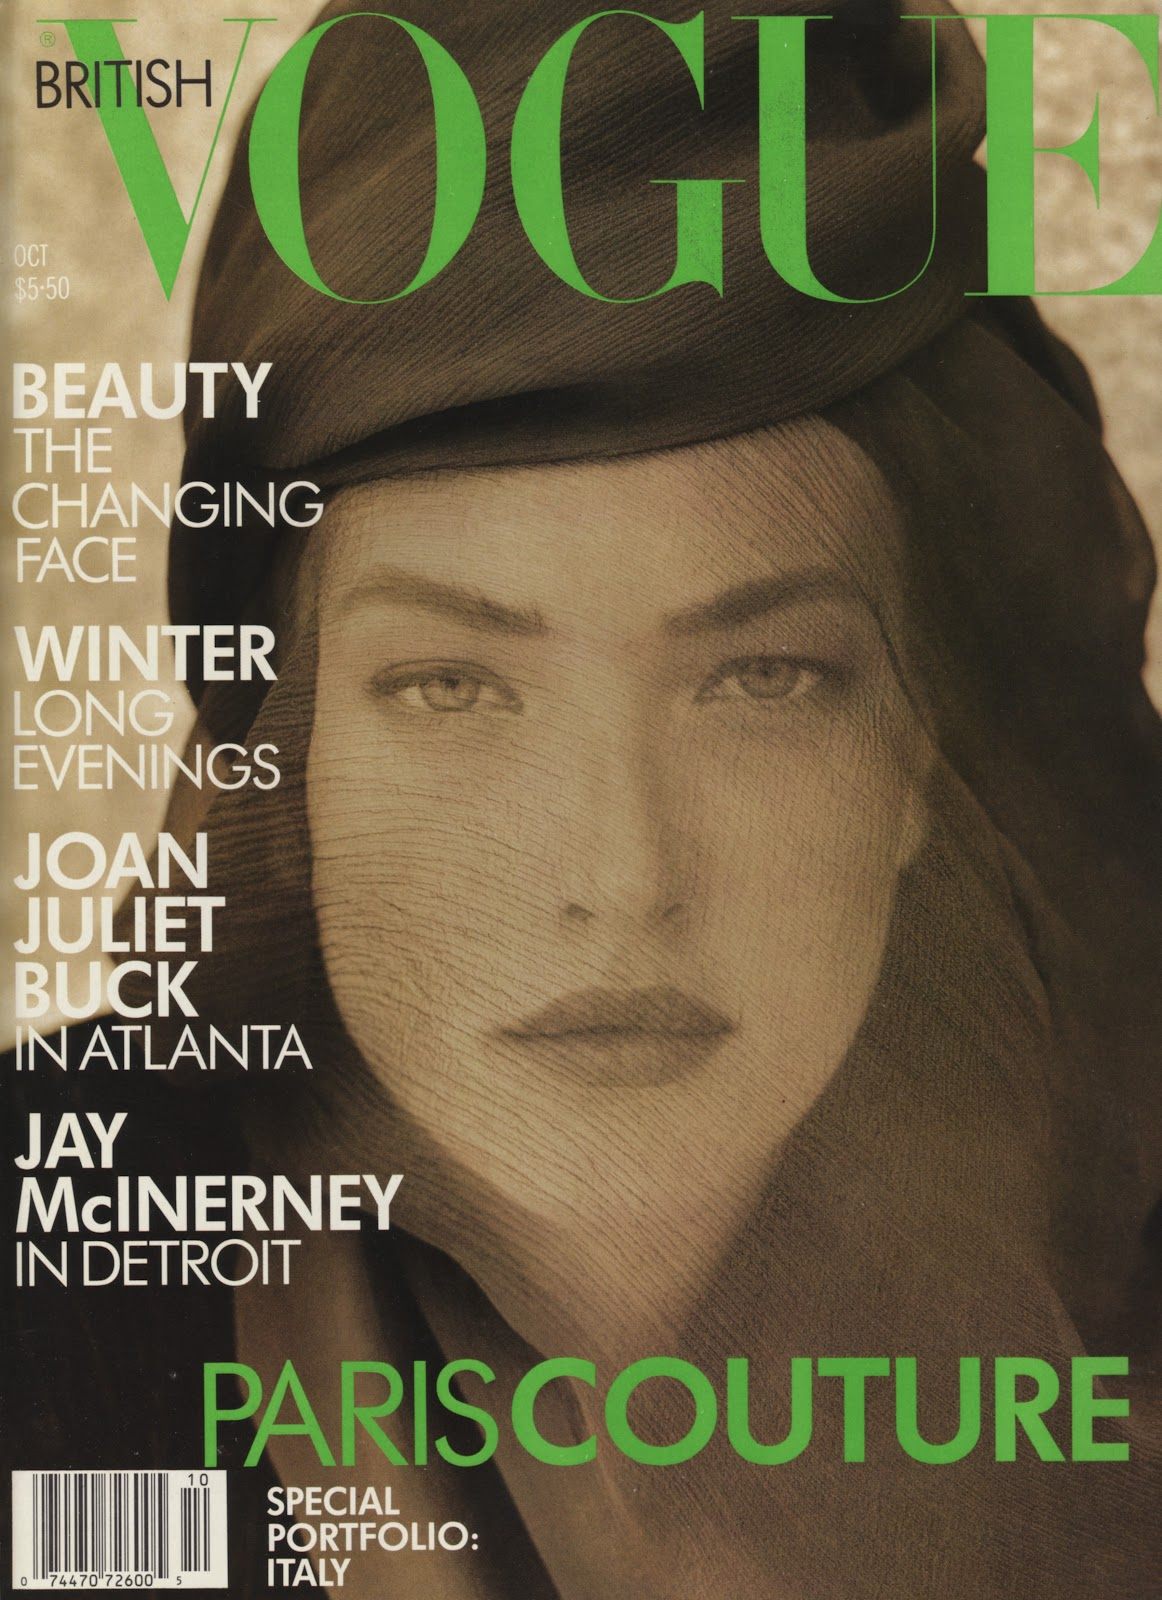 http://3.bp.blogspot.com/-5qRgrYBh0Z0/UA6wm5NMQzI/AAAAAAAAIes/ihCKEYnw3pQ/s1600/Tatjana+Vogue_UK+Oct+1988+Ritts+bellazon.jpg